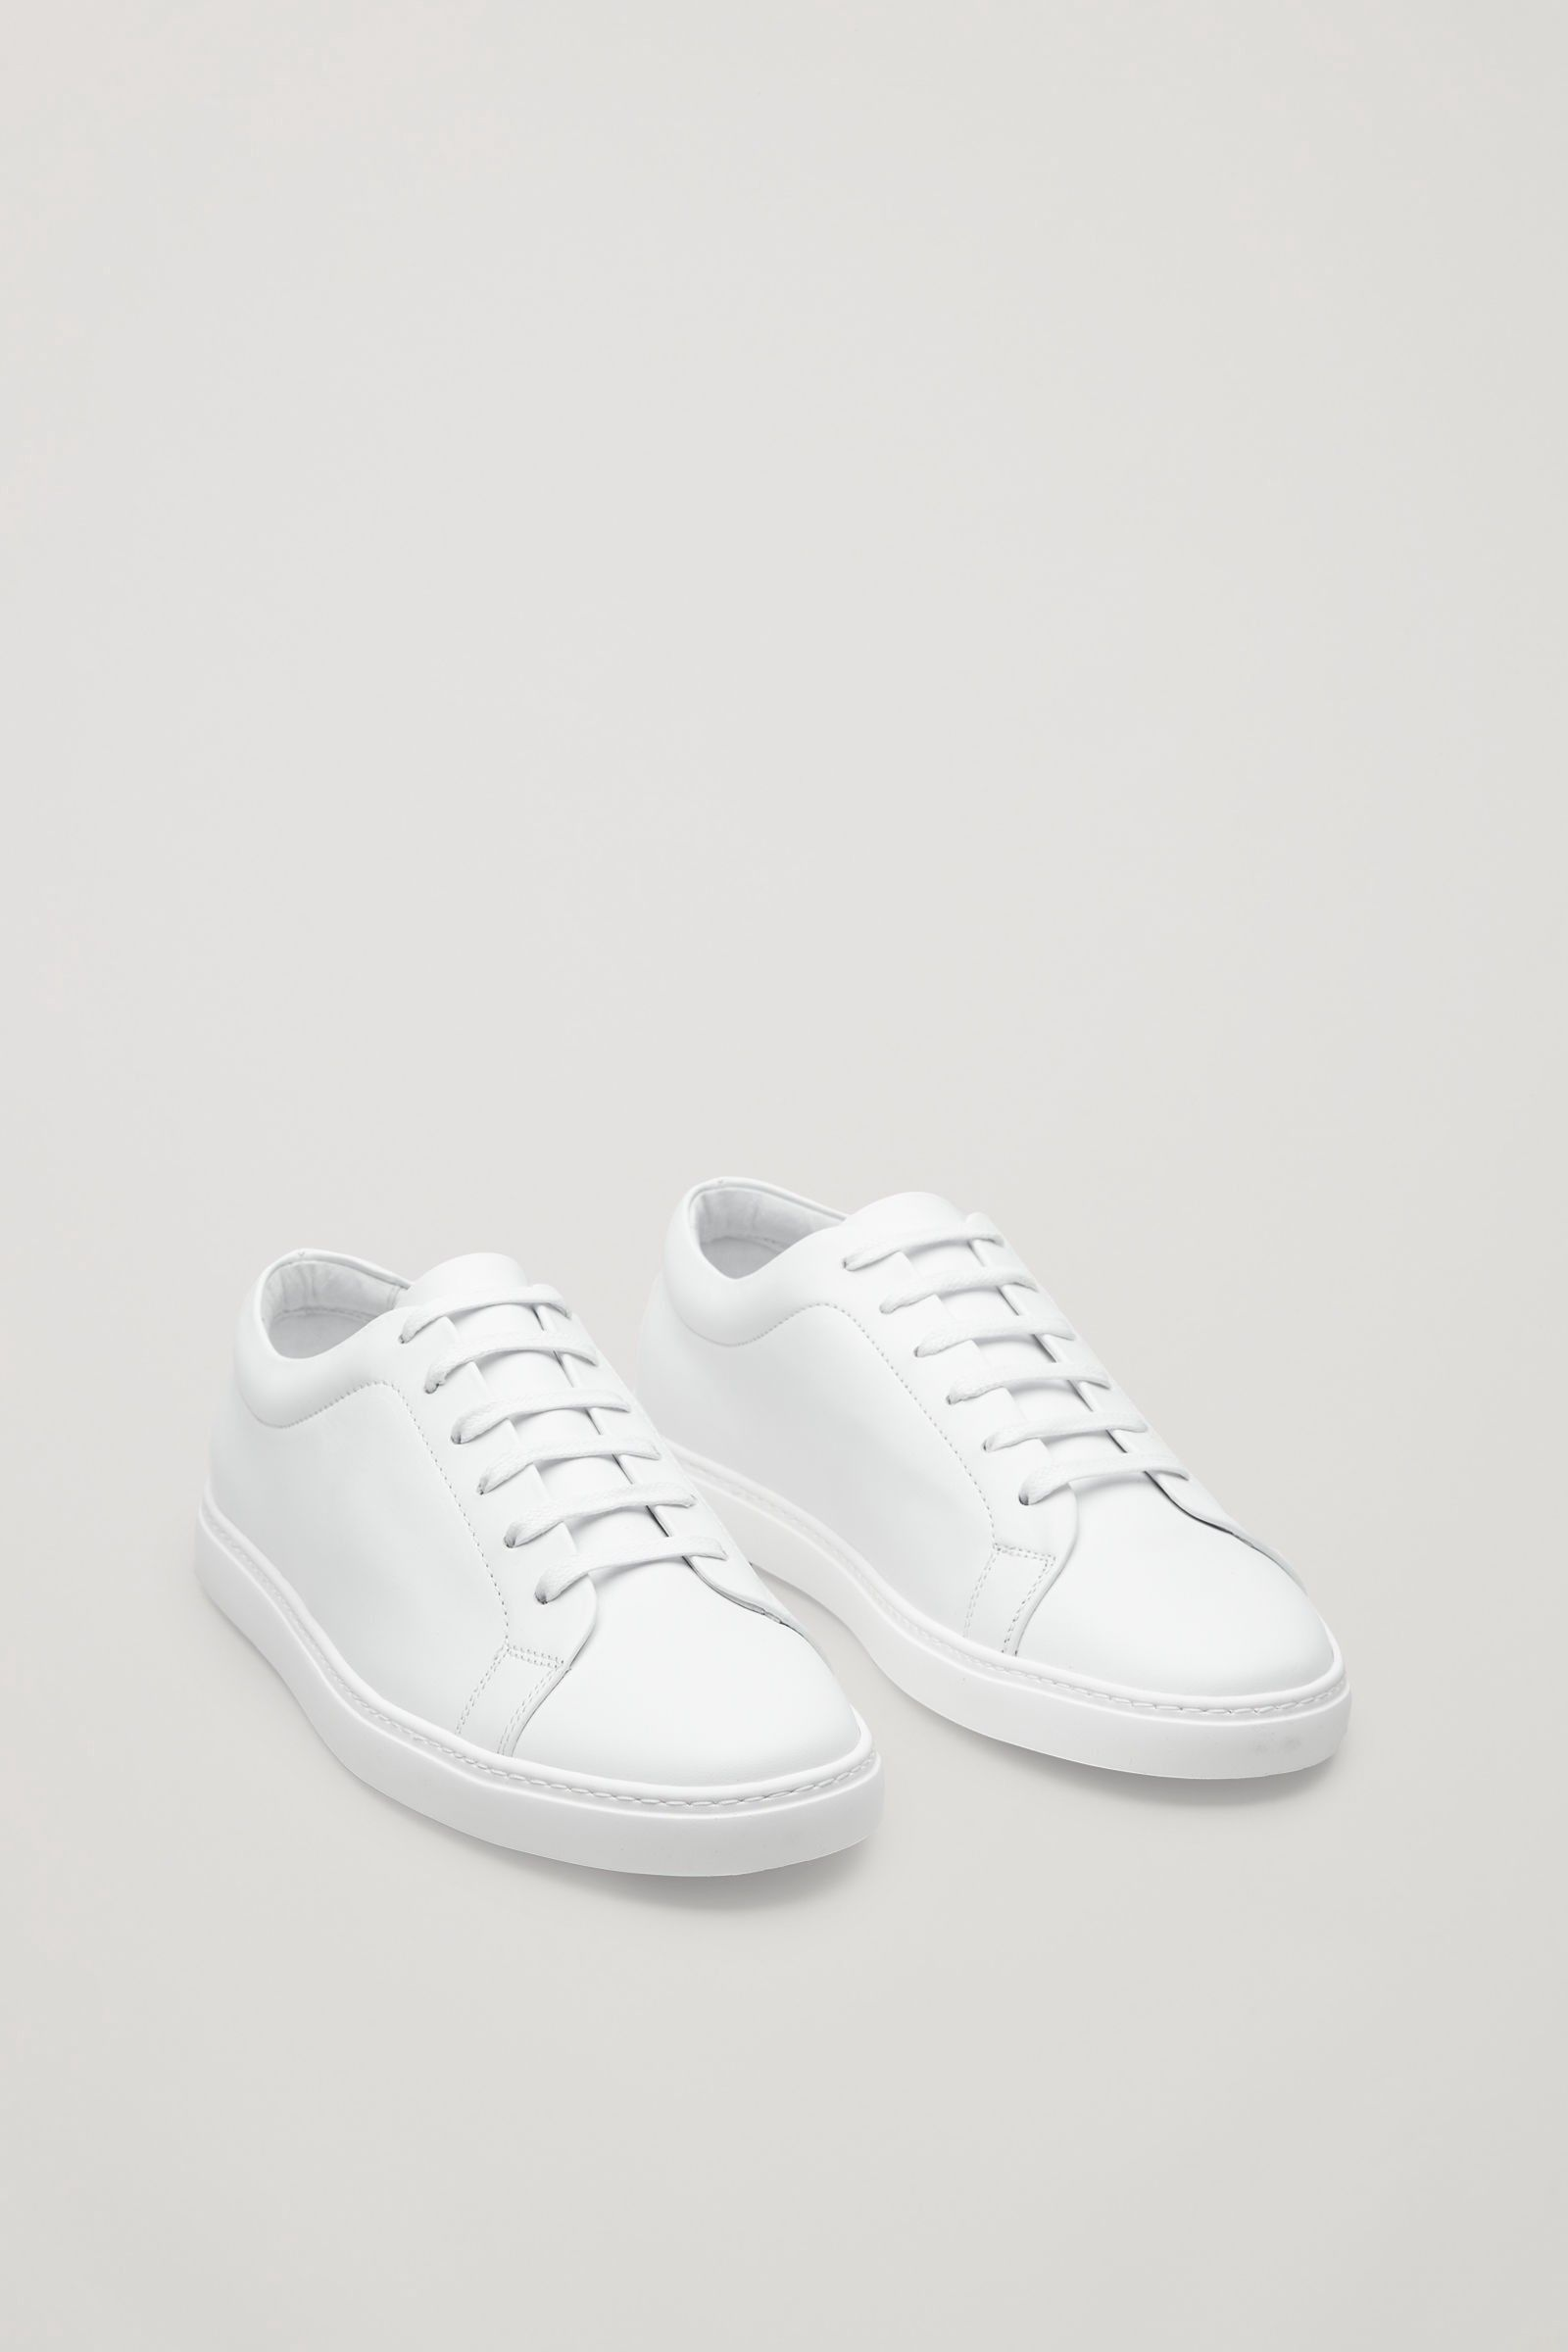 7bfa5c5abc0 Slim-sole lace-up sneakers - white(OUT OF STOCK) by COS